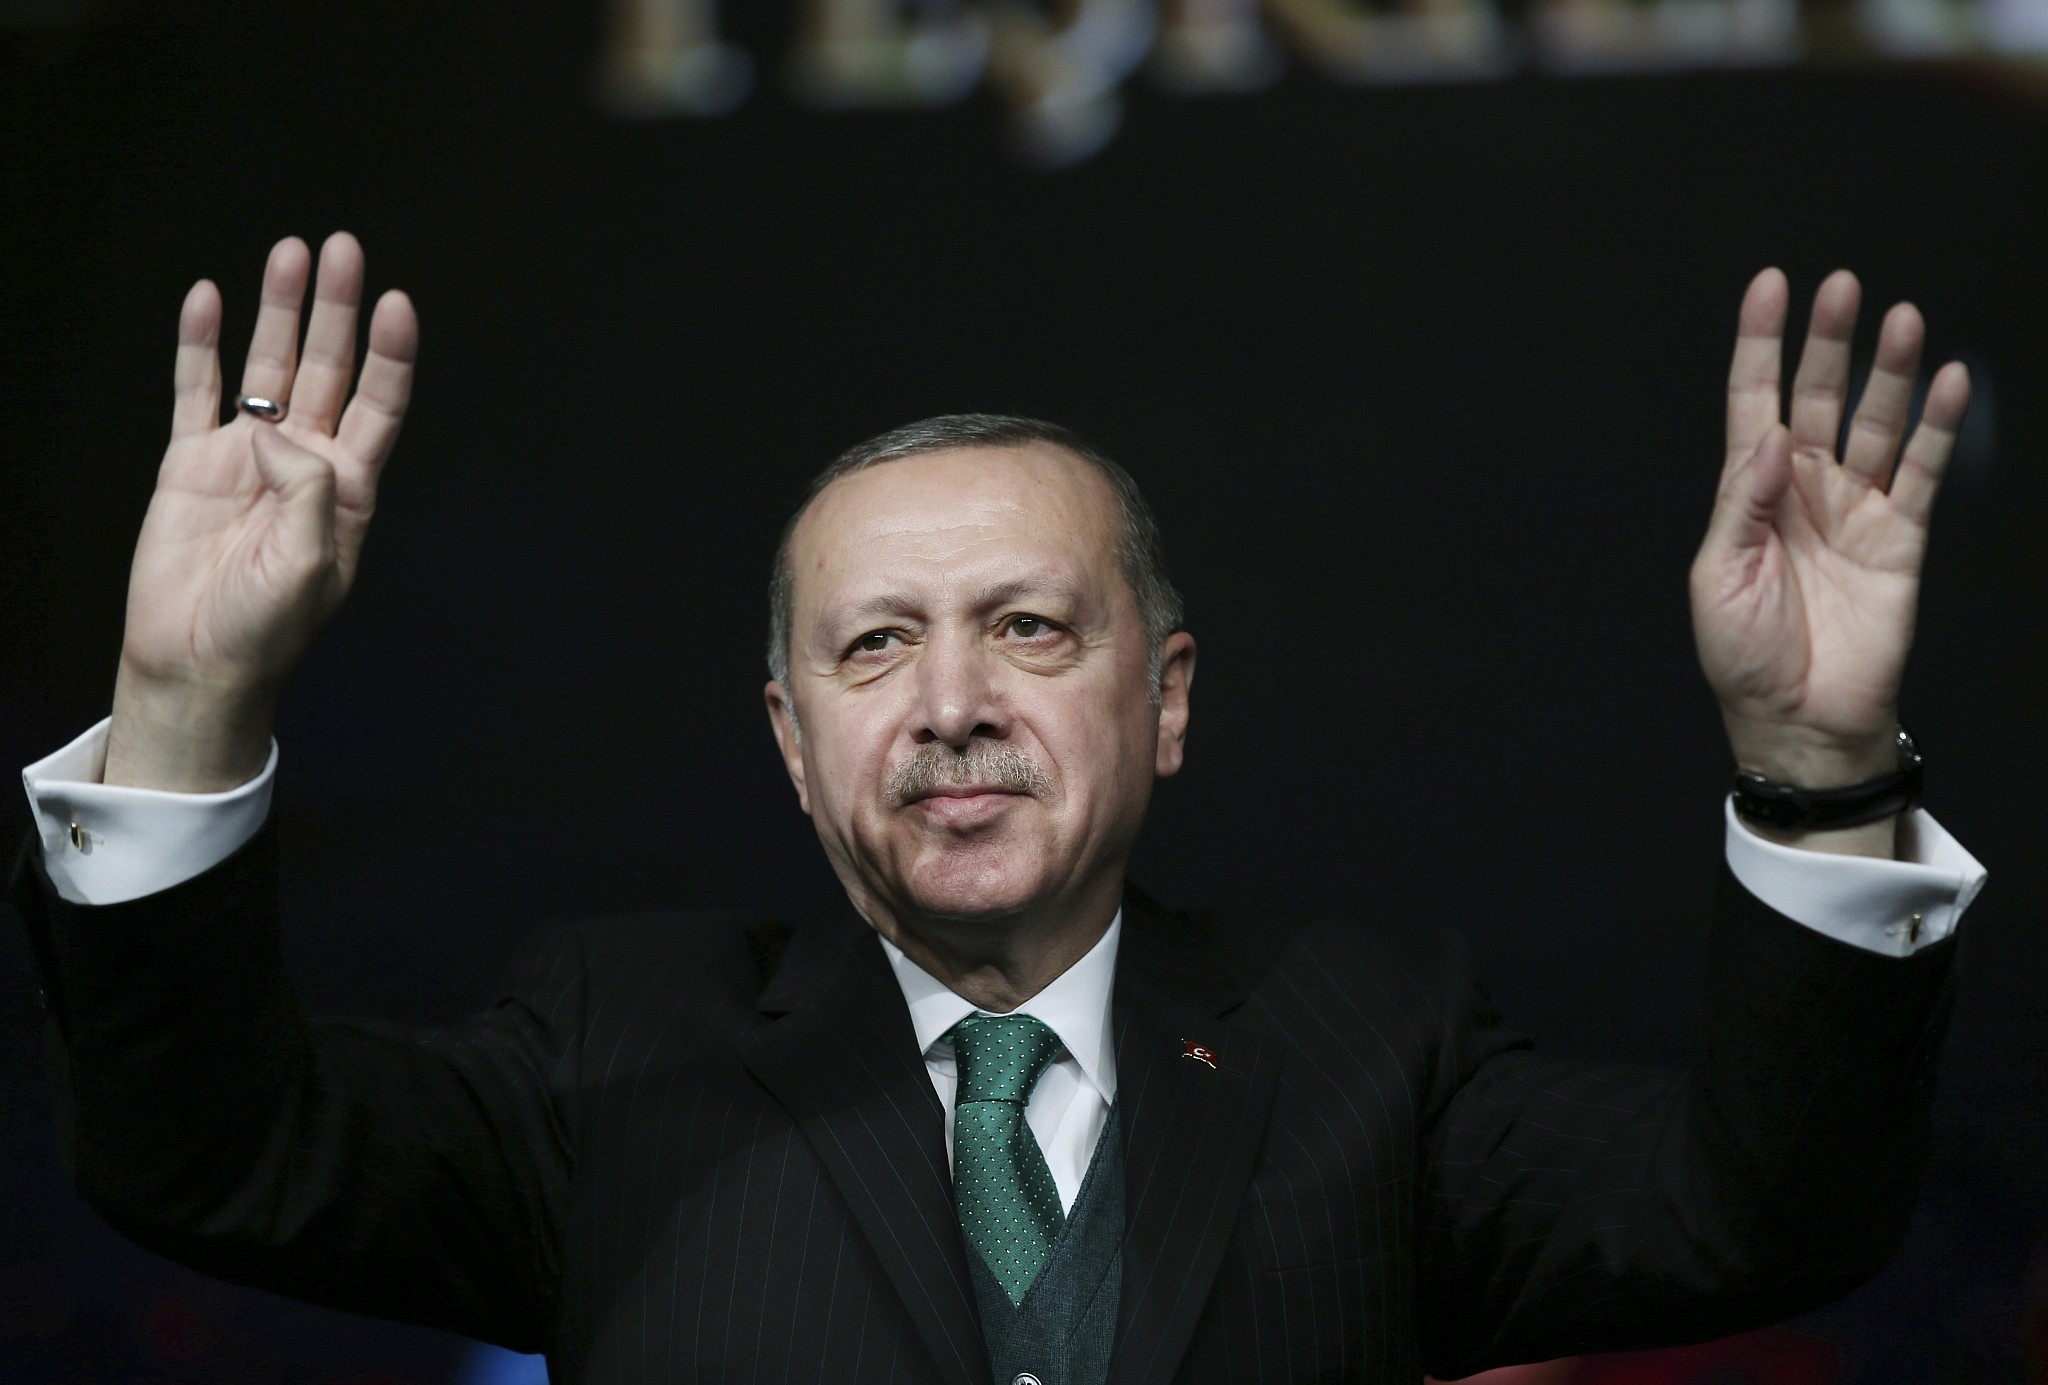 Turkey s President Recep Tayyip Erdogan gestures as he attends a national youth foundation event in Ankara